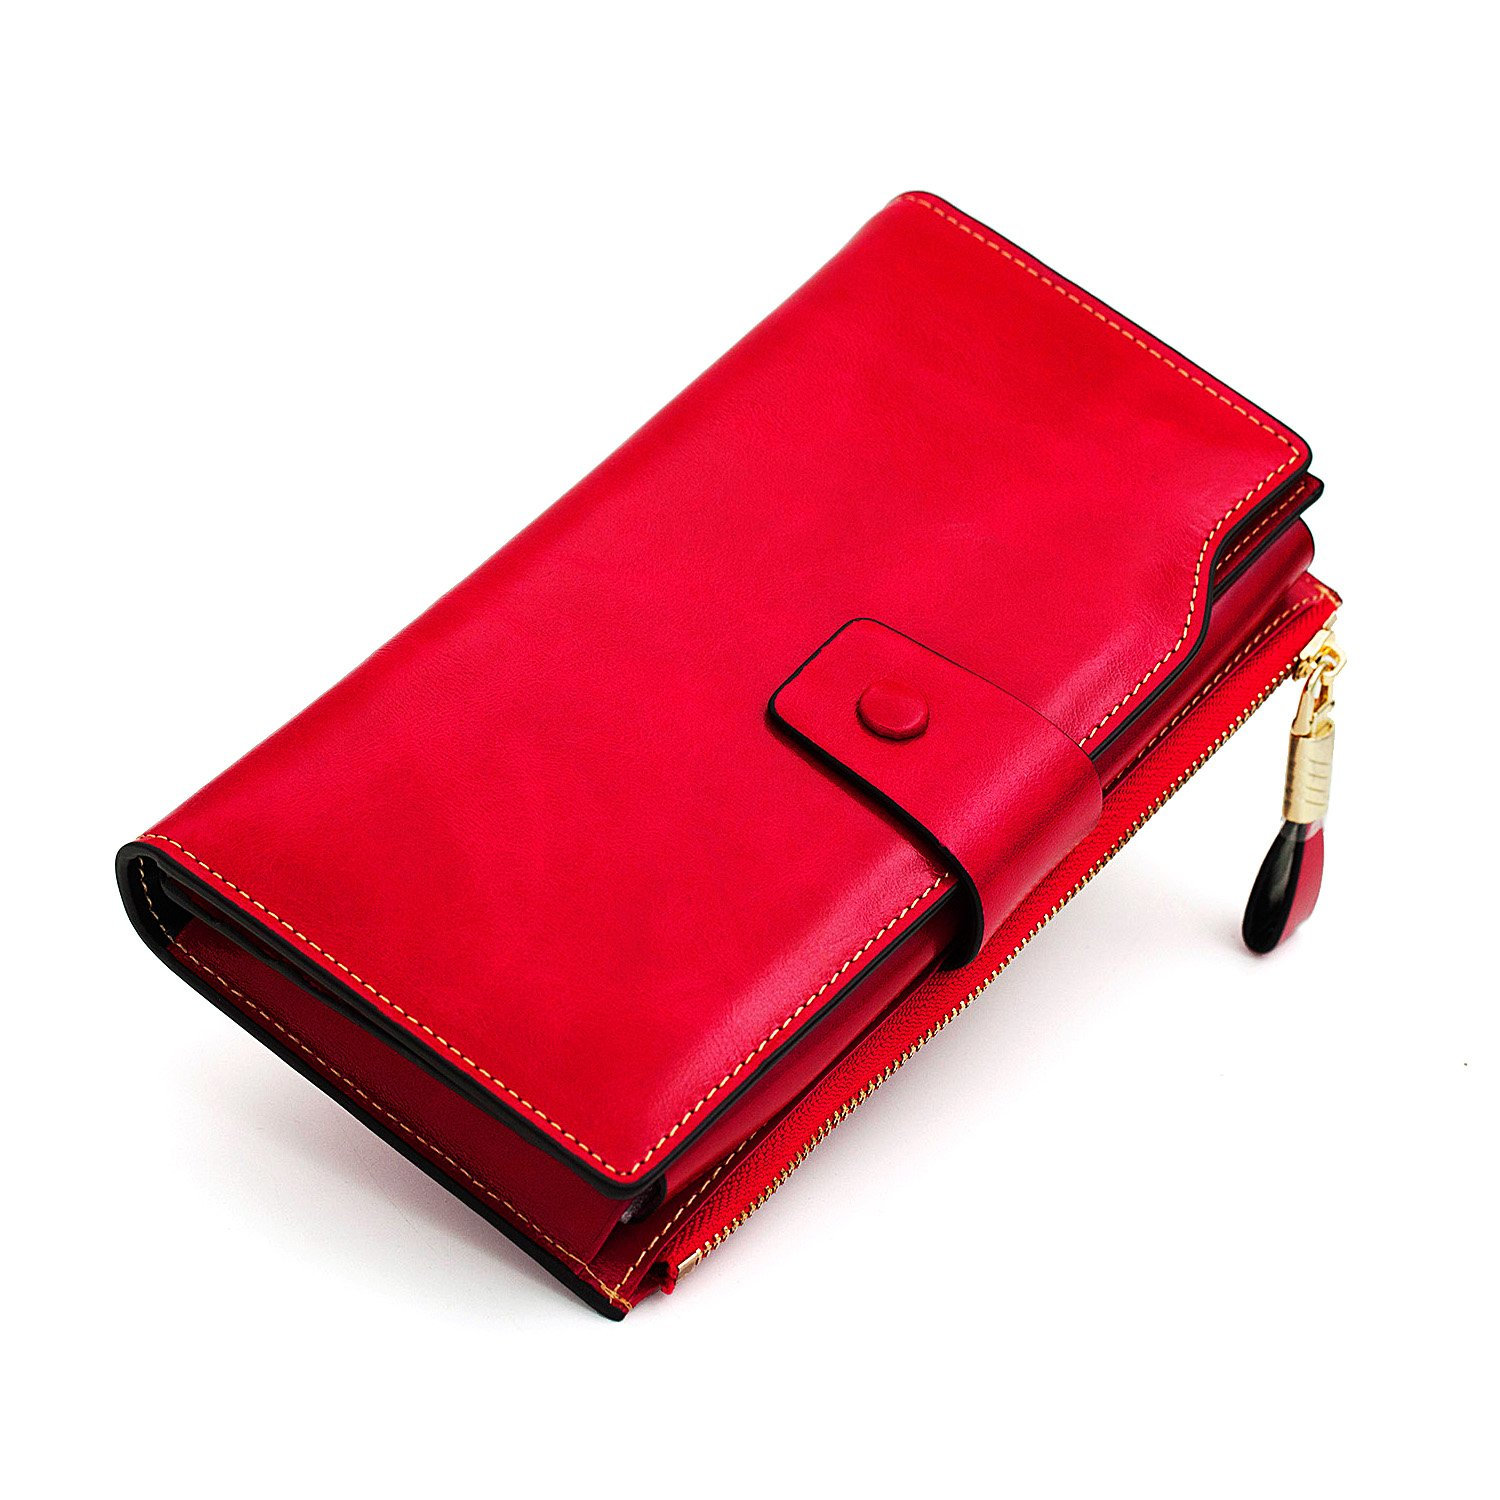 Women's Large Capacity Luxury Genuine Leather Wallet Clutch with Zipper Pocket